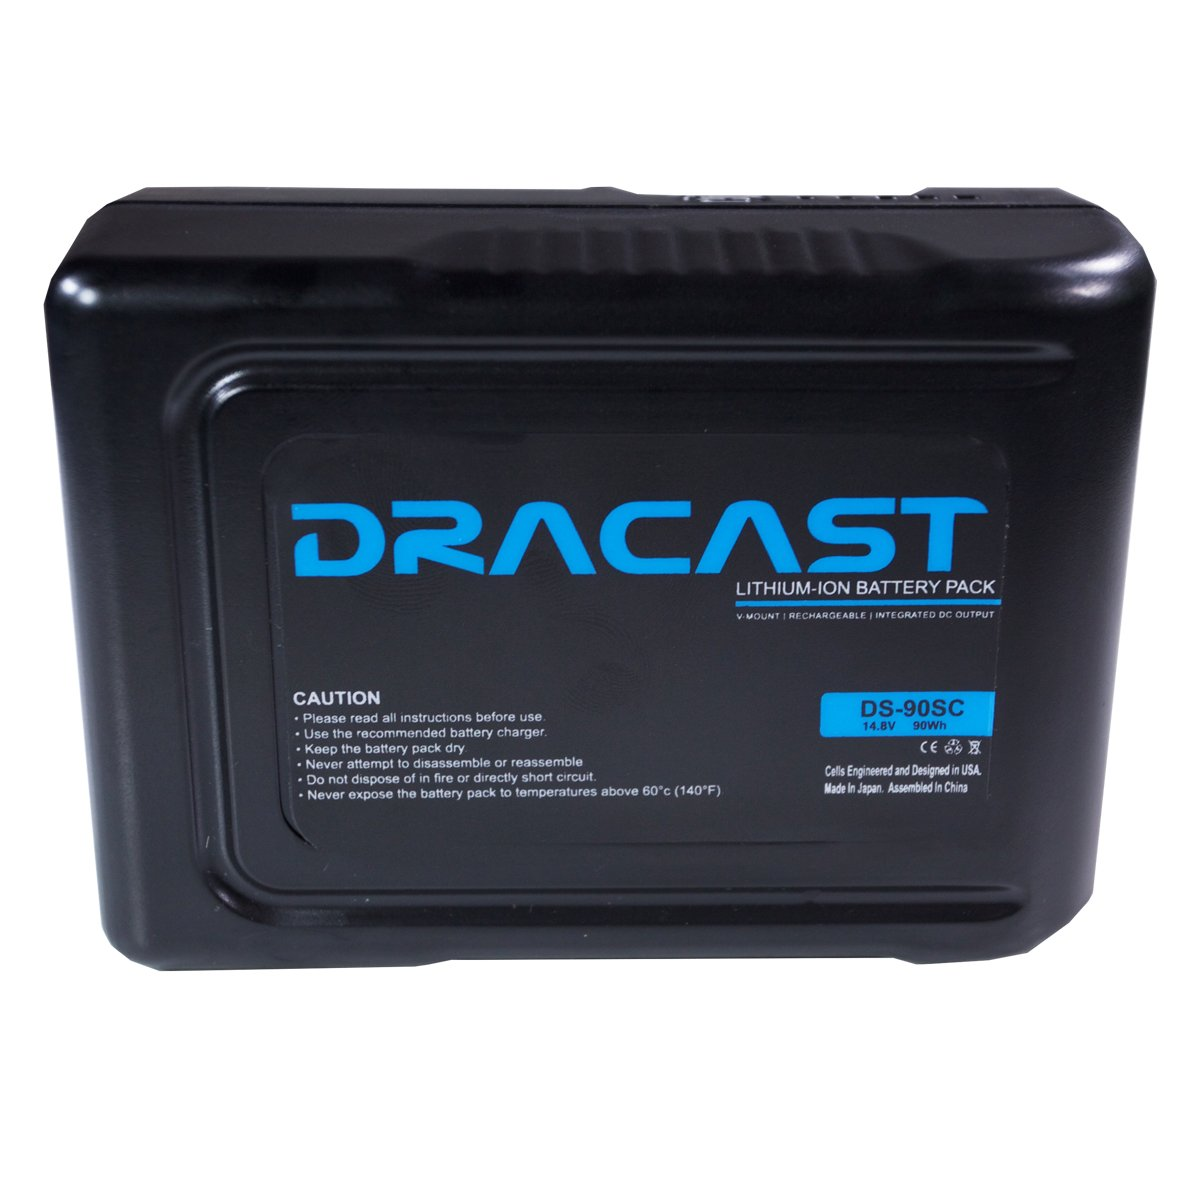 Dracast 90Wh 14.8V Compact Li-Ion V-Mount Battery, Black (BA-90SC) by Dracast